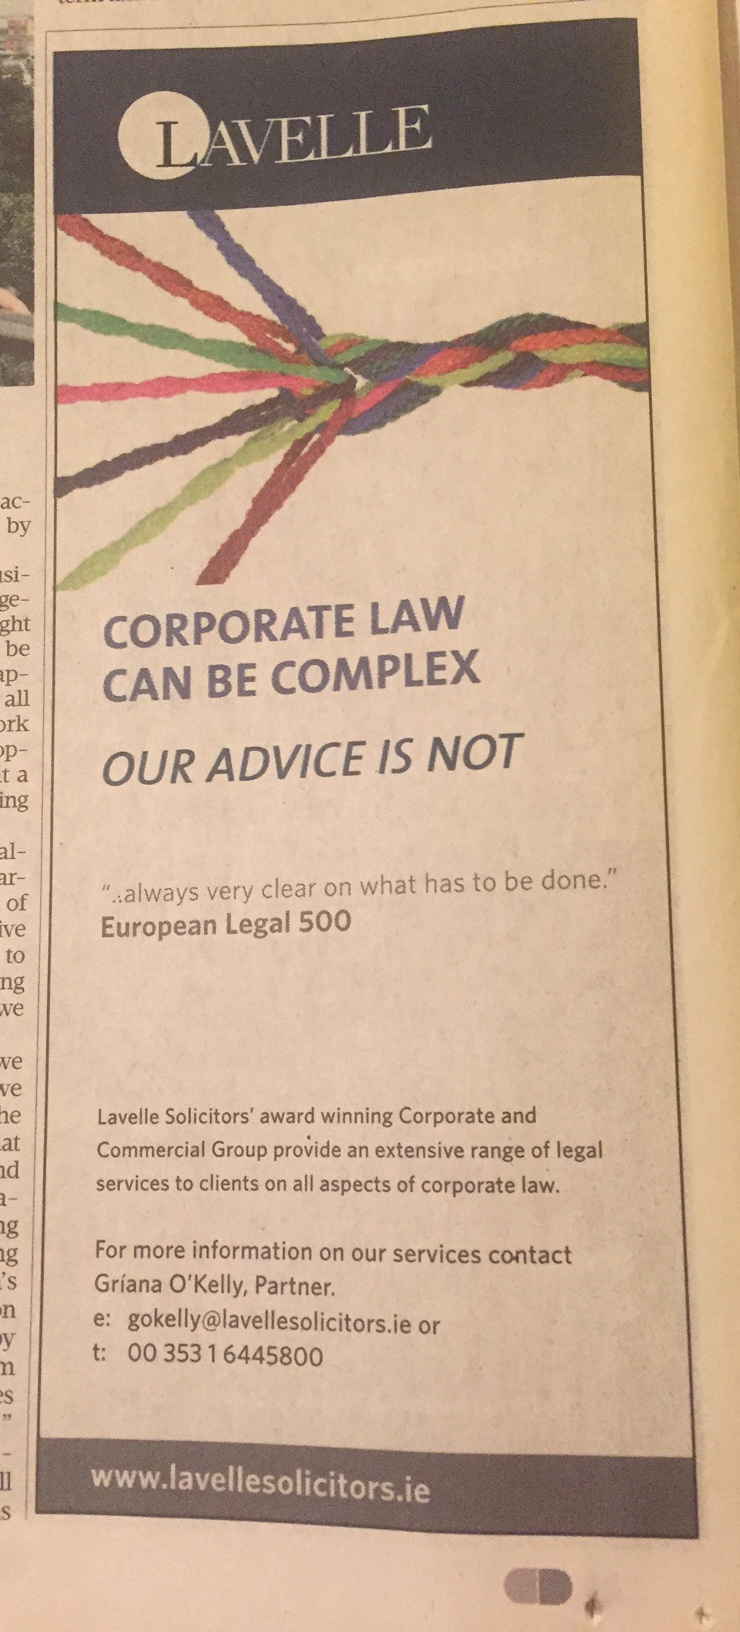 Lavelle – corporate law can be complex – our advice is not